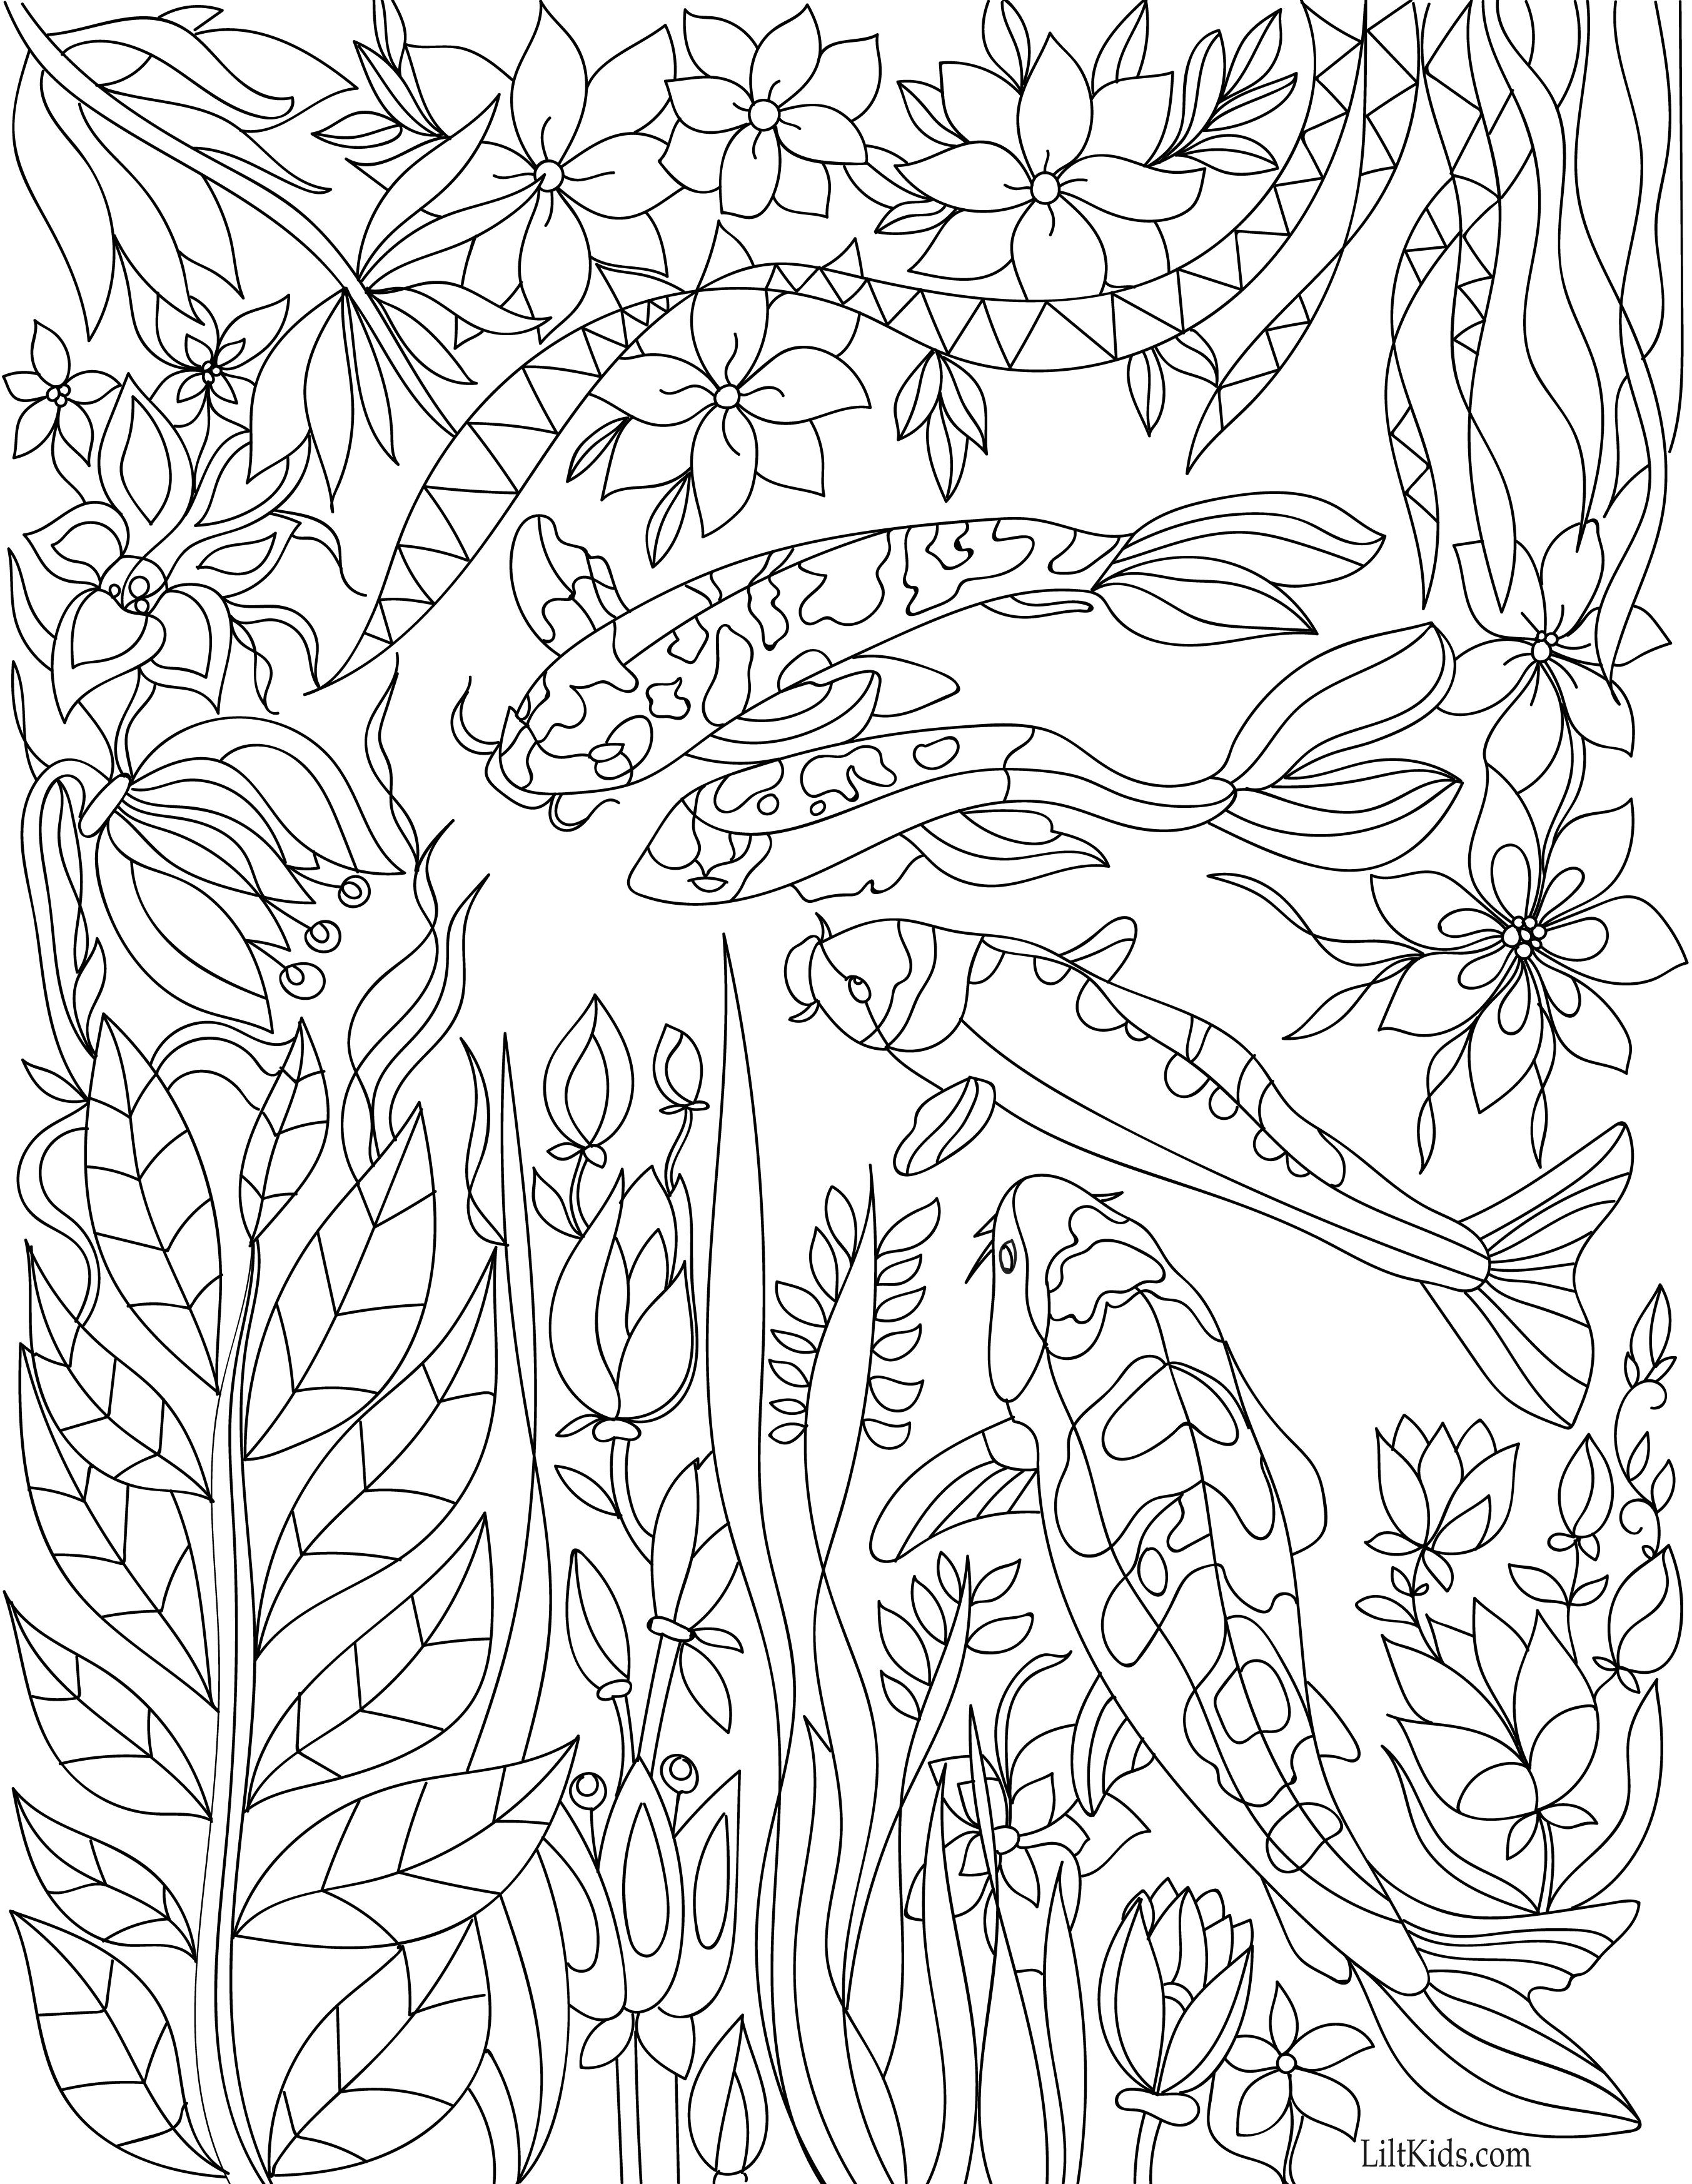 Free koi pond with lillies adult coloring book image from LiltKids ...